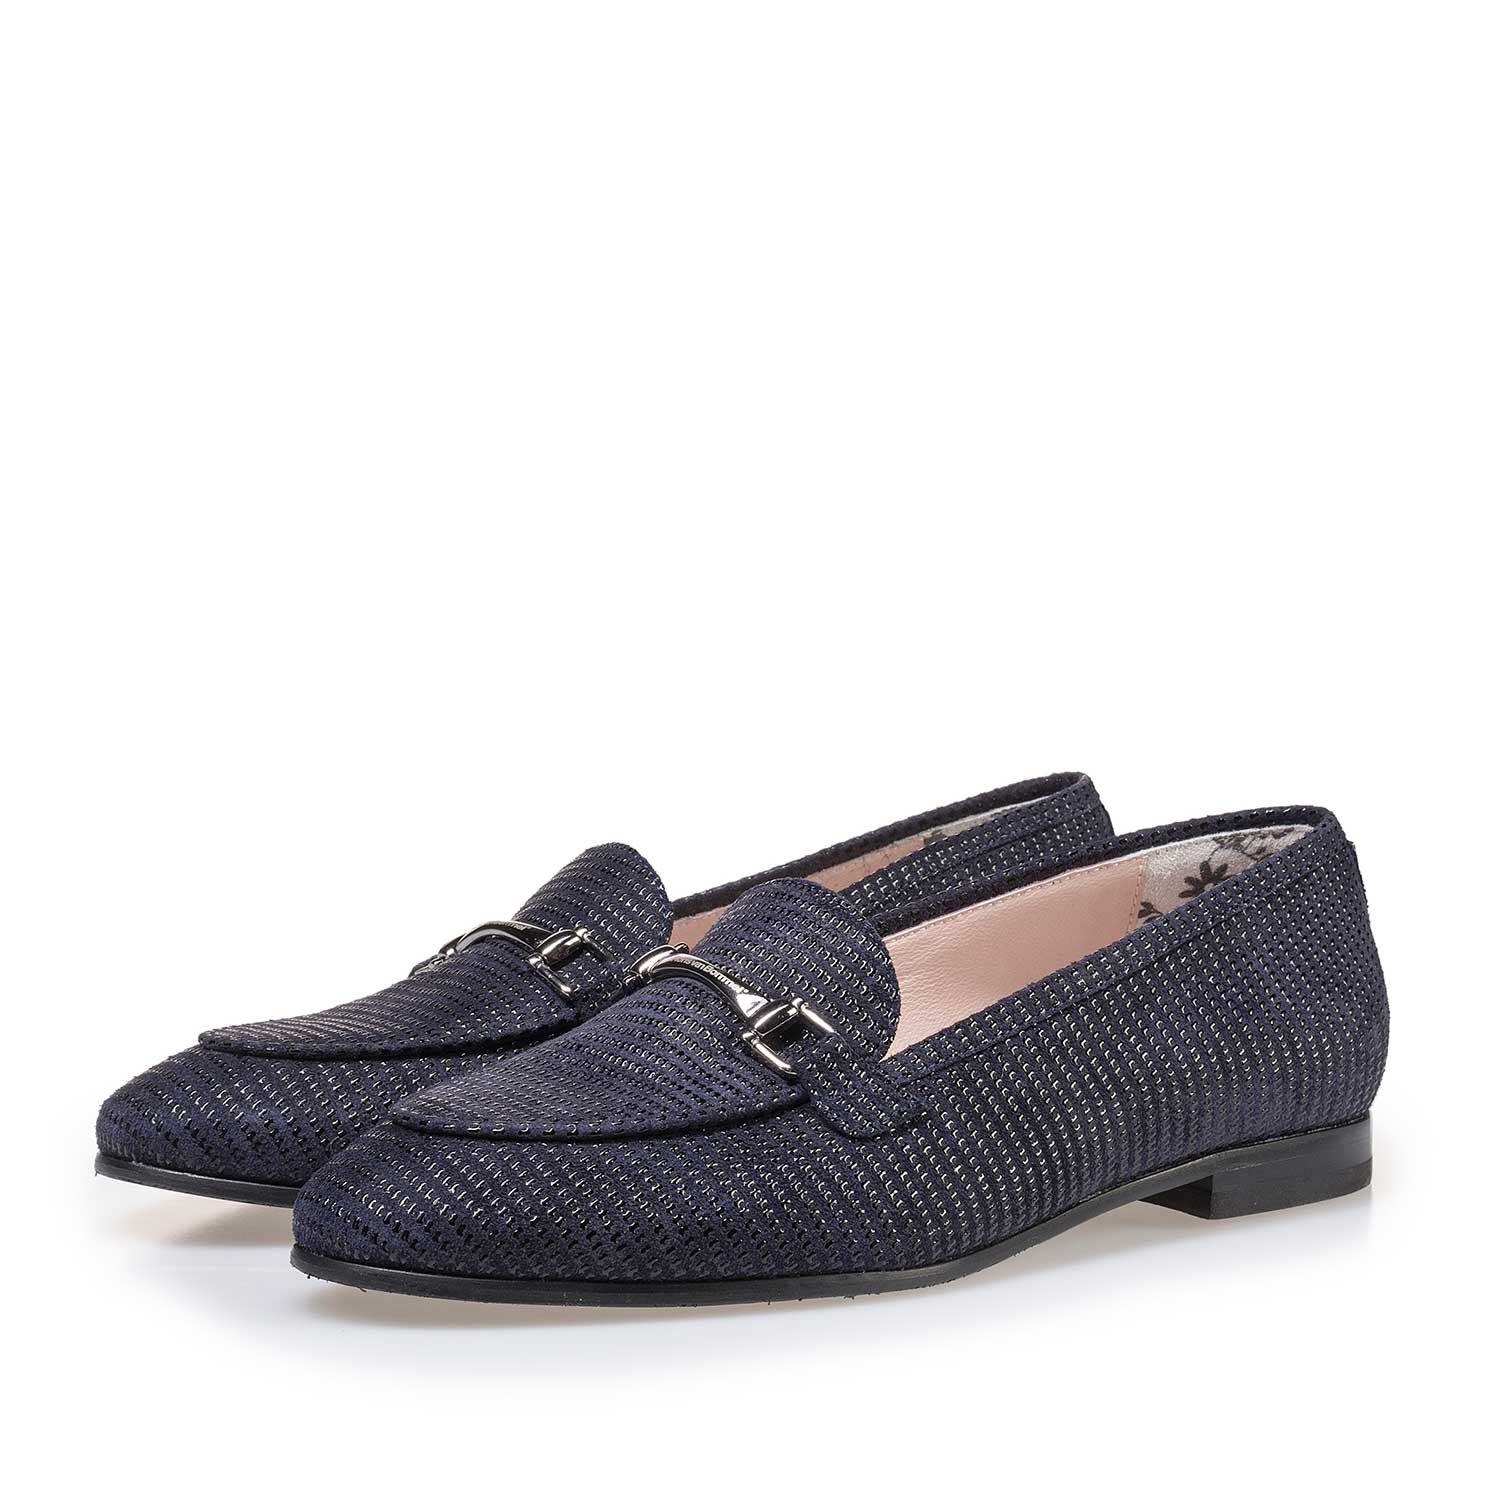 85231/04 - Dark blue suede leather loafer with printed motif